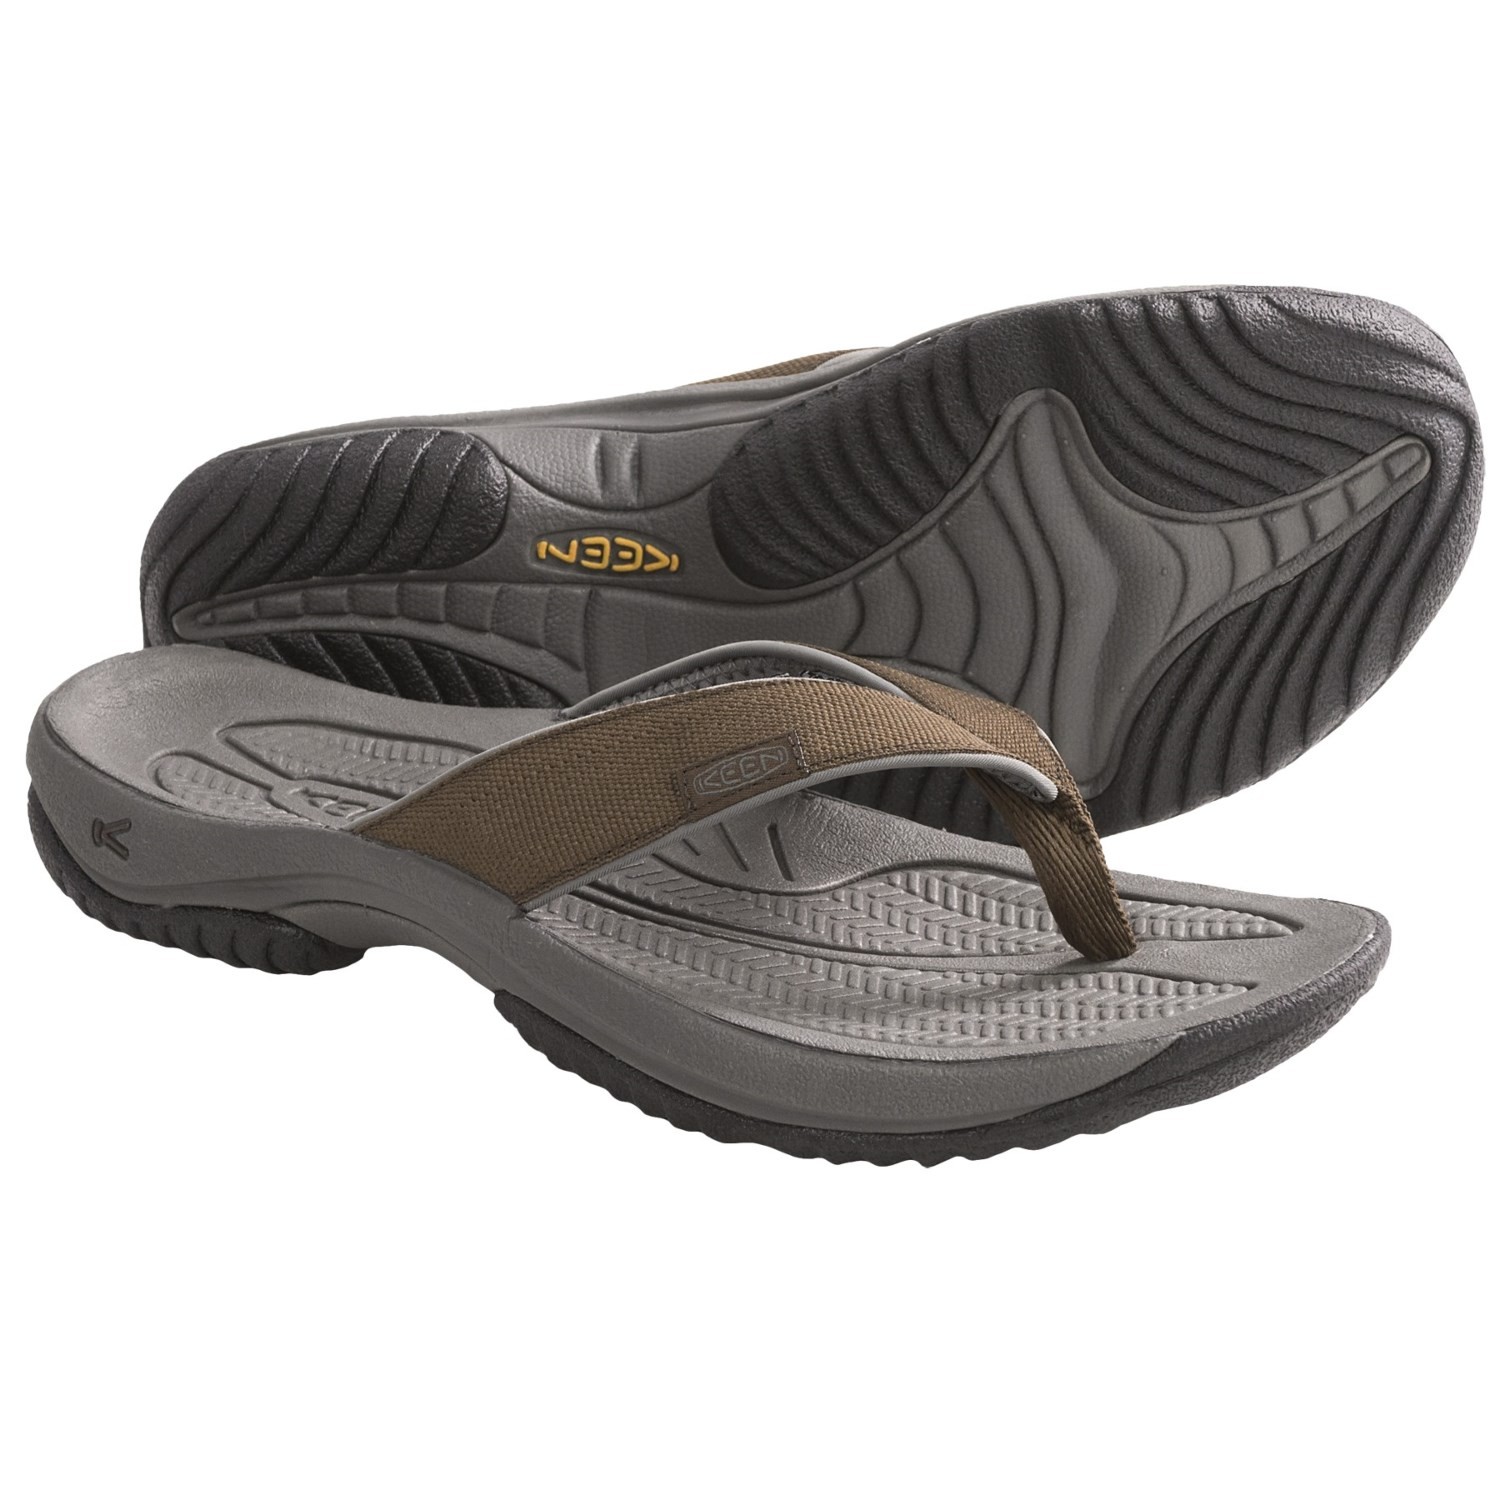 Free shipping and returns on All Men's Flip-Flop Shoes at dnxvvyut.ml